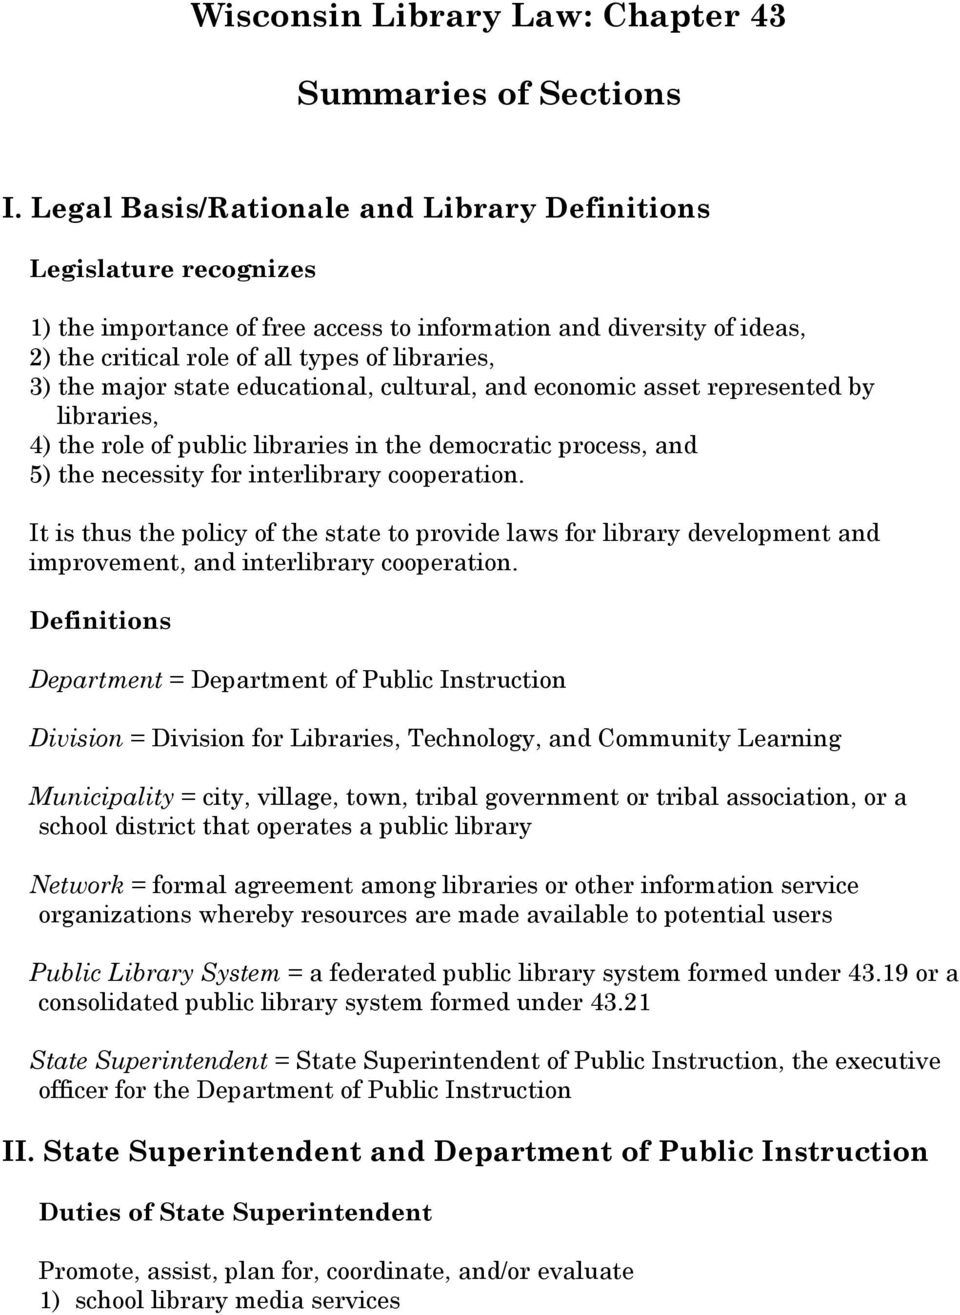 major state educational, cultural, and economic asset represented by libraries, 4) the role of public libraries in the democratic process, and 5) the necessity for interlibrary cooperation.